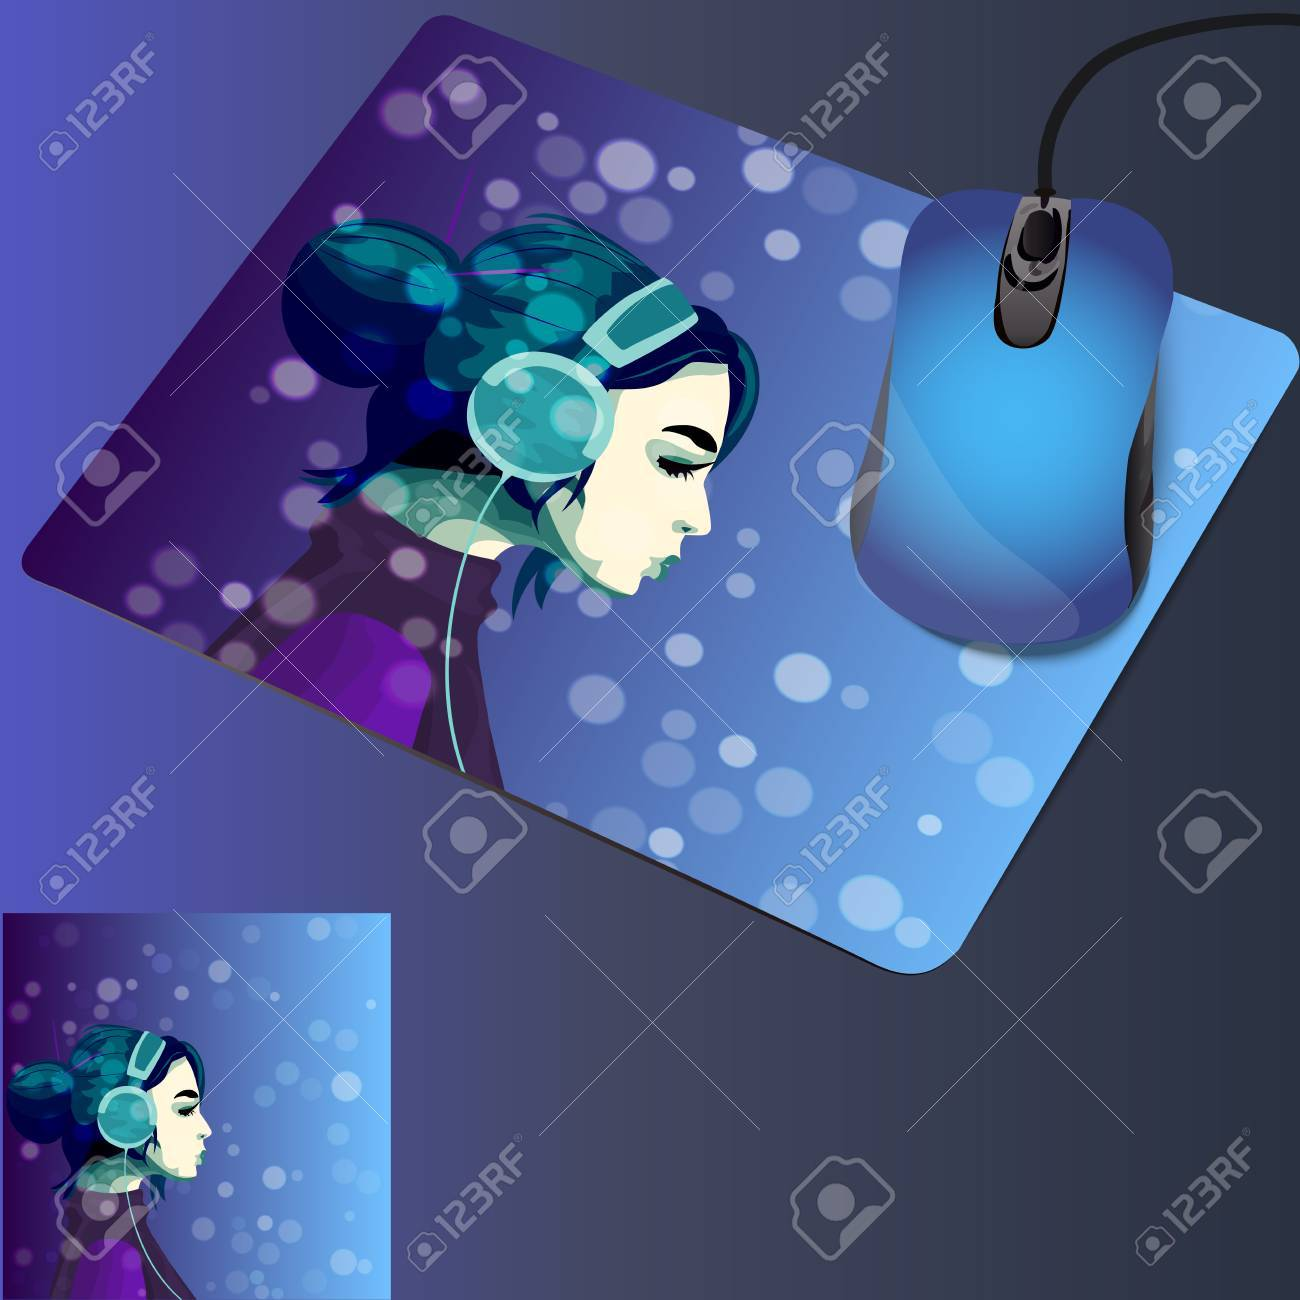 very high quality original trendy illustration on mouse pad with..